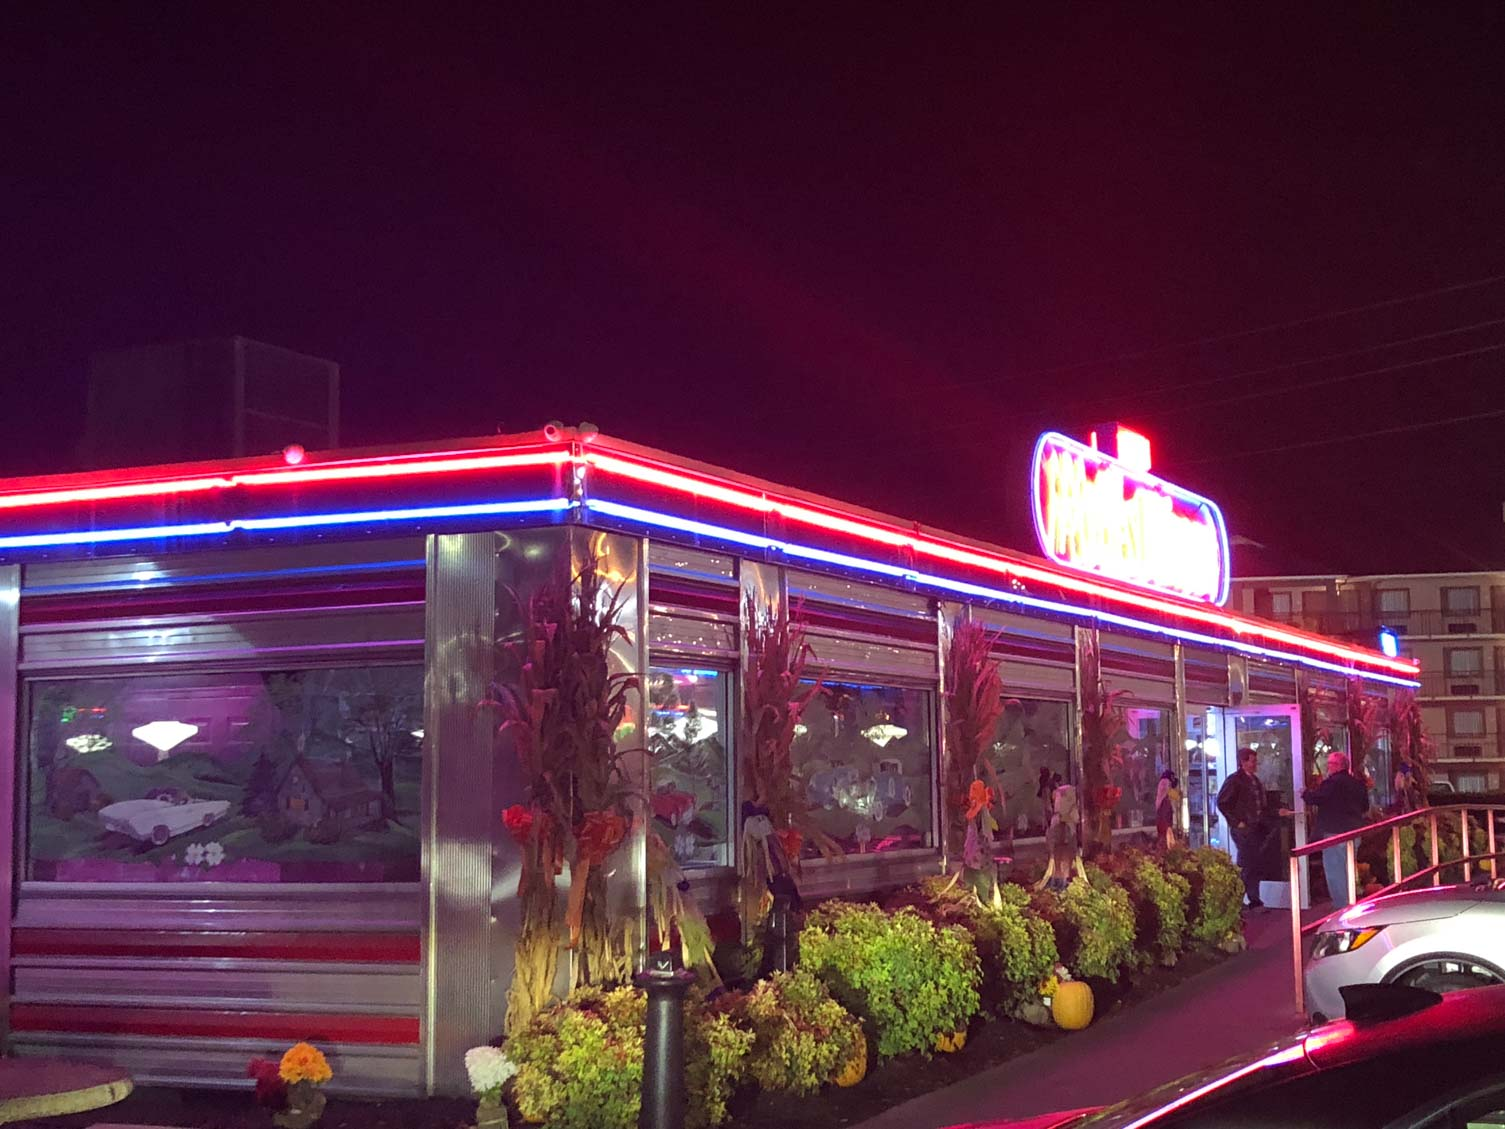 Mel S Classic Diner Traditional Diner Restaurant In Pigeon